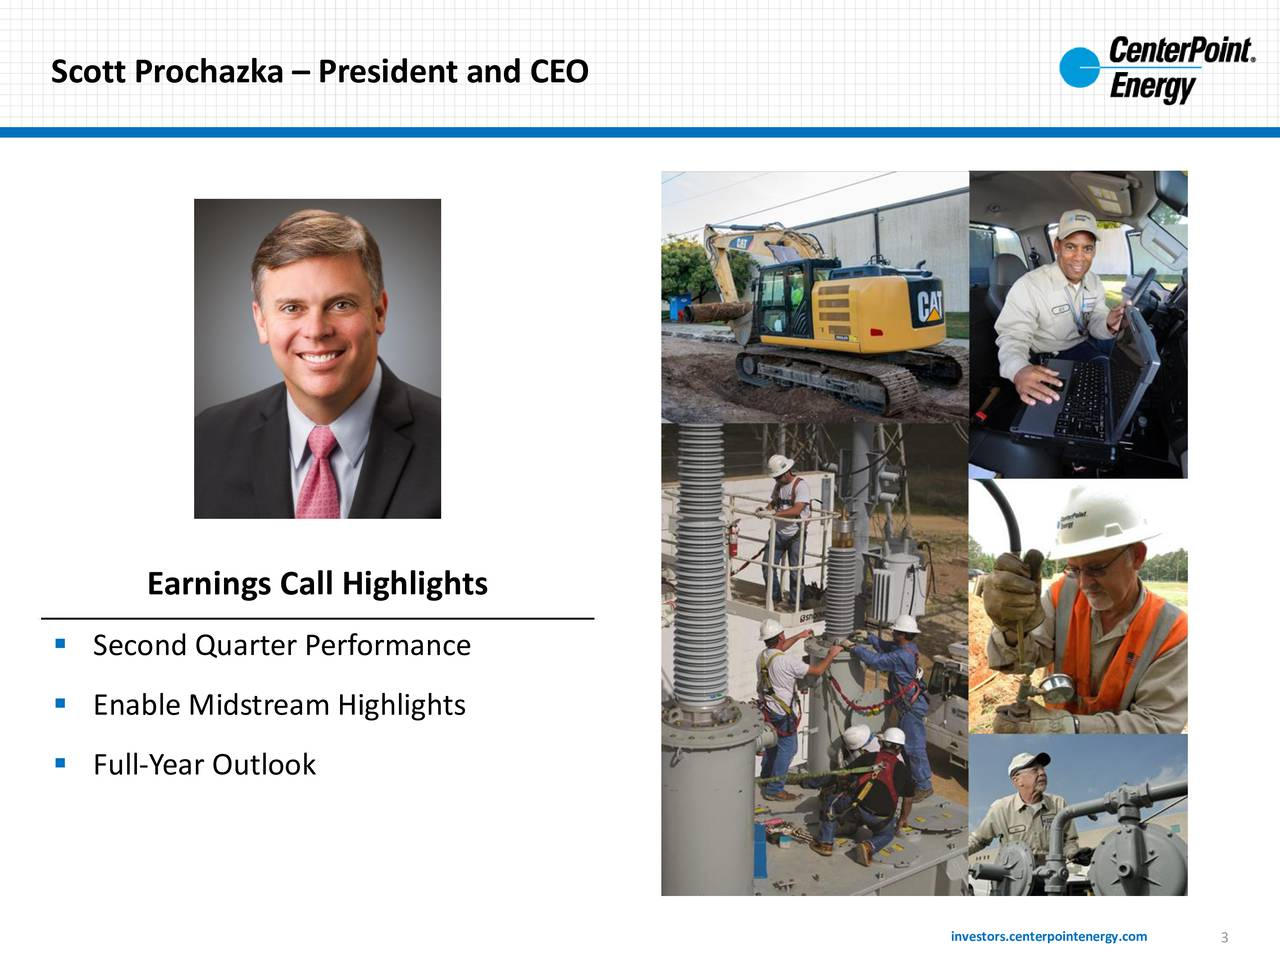 Earnings Call Highlights Second Quarter Performance Enable Midstream Highlights Full-Year Outlook investors.centerpointen3rgy.com